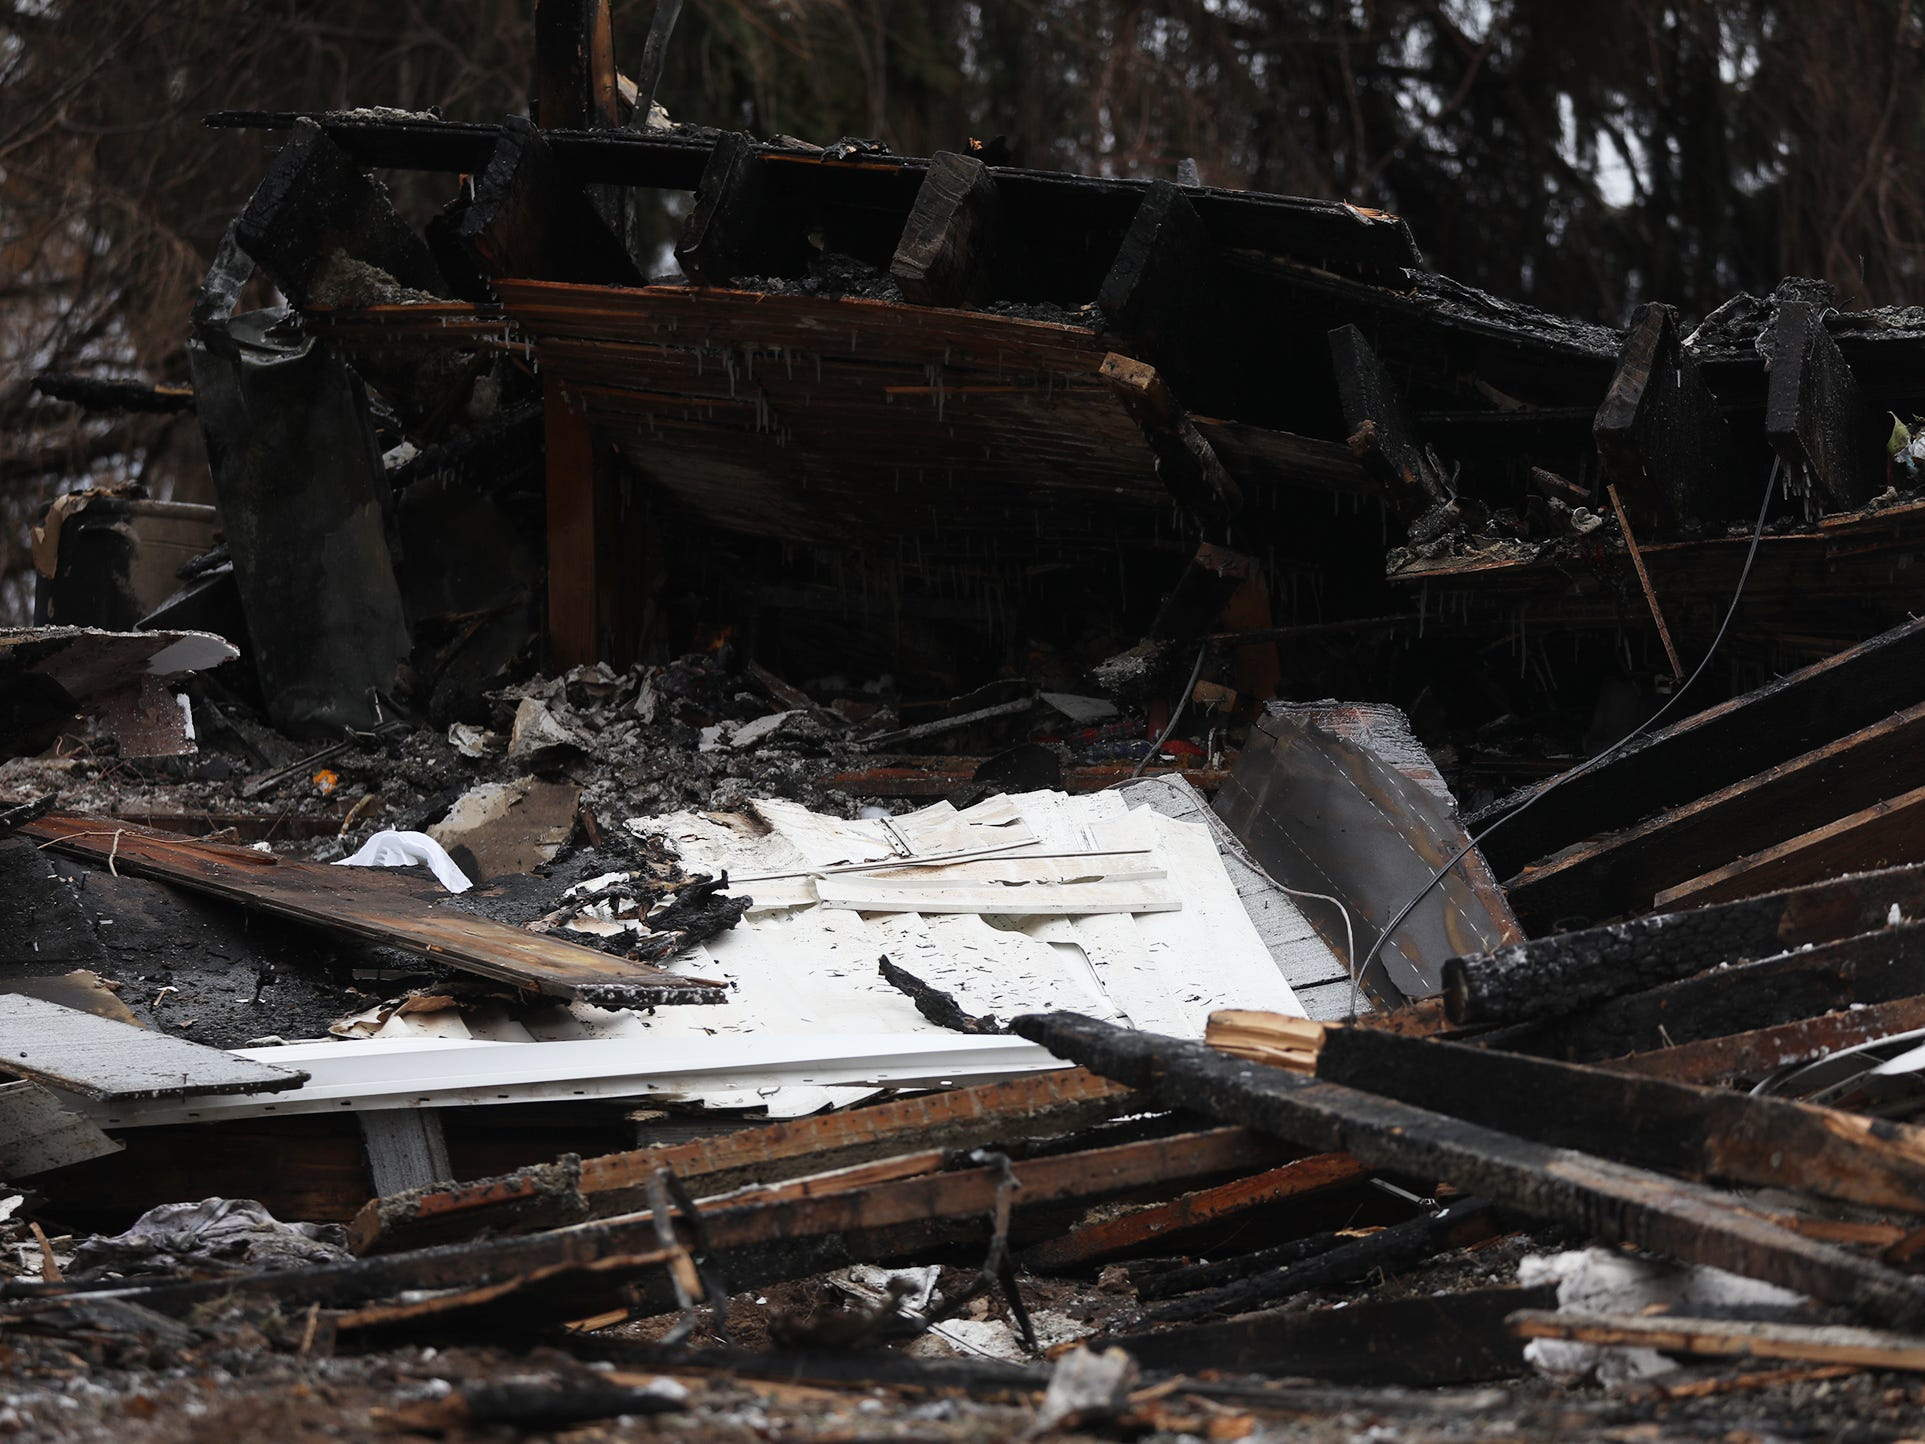 The two-story farmhouse collapsed in on itself during the fire.